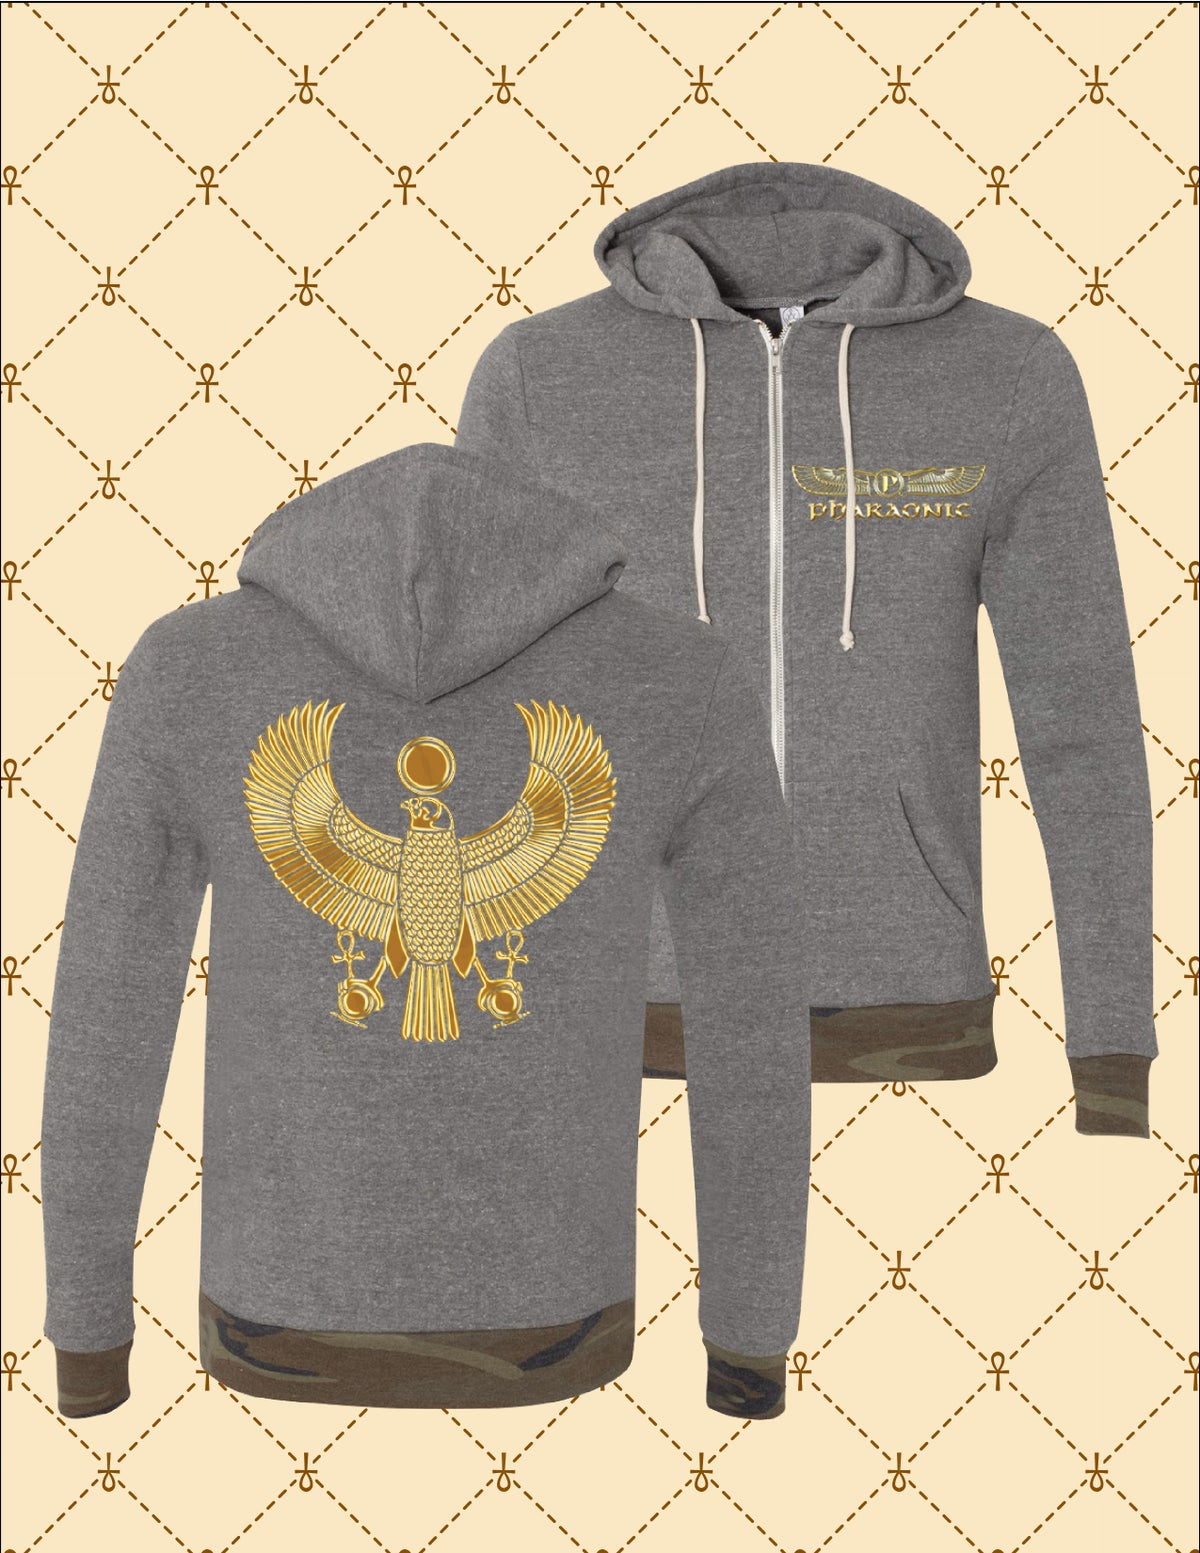 Image of Men's/Women's Gold HRU Athletic Grey_Camo Zip Up Hoodie